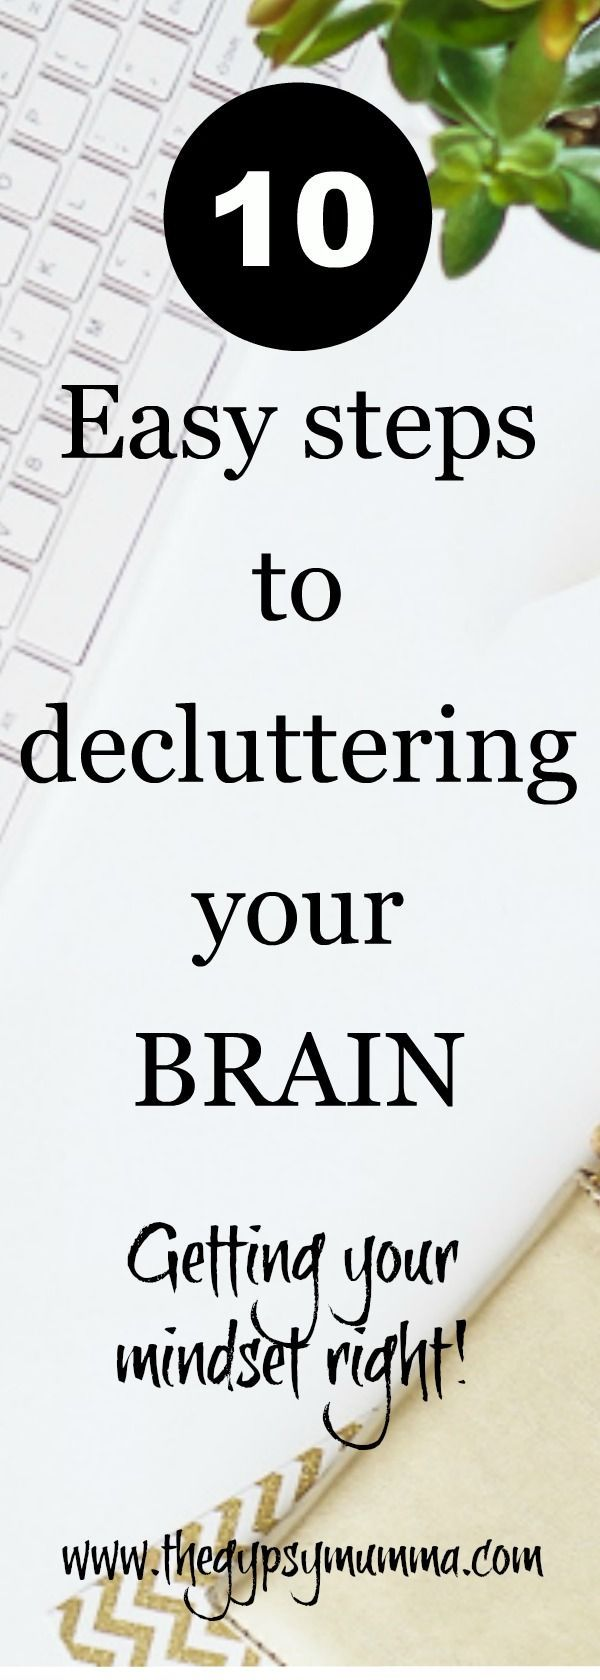 10 Easy Steps to decluttering your brain - Getting your mindset right! The Gypsy Mumma